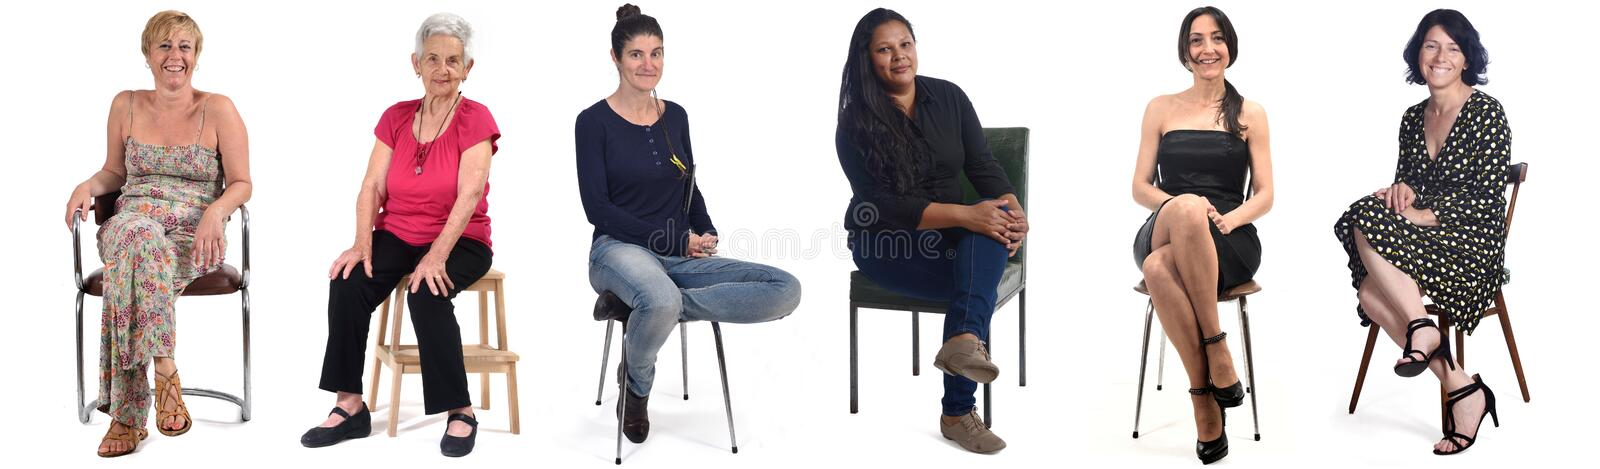 Group of women sitting on chair on white background royalty free stock image